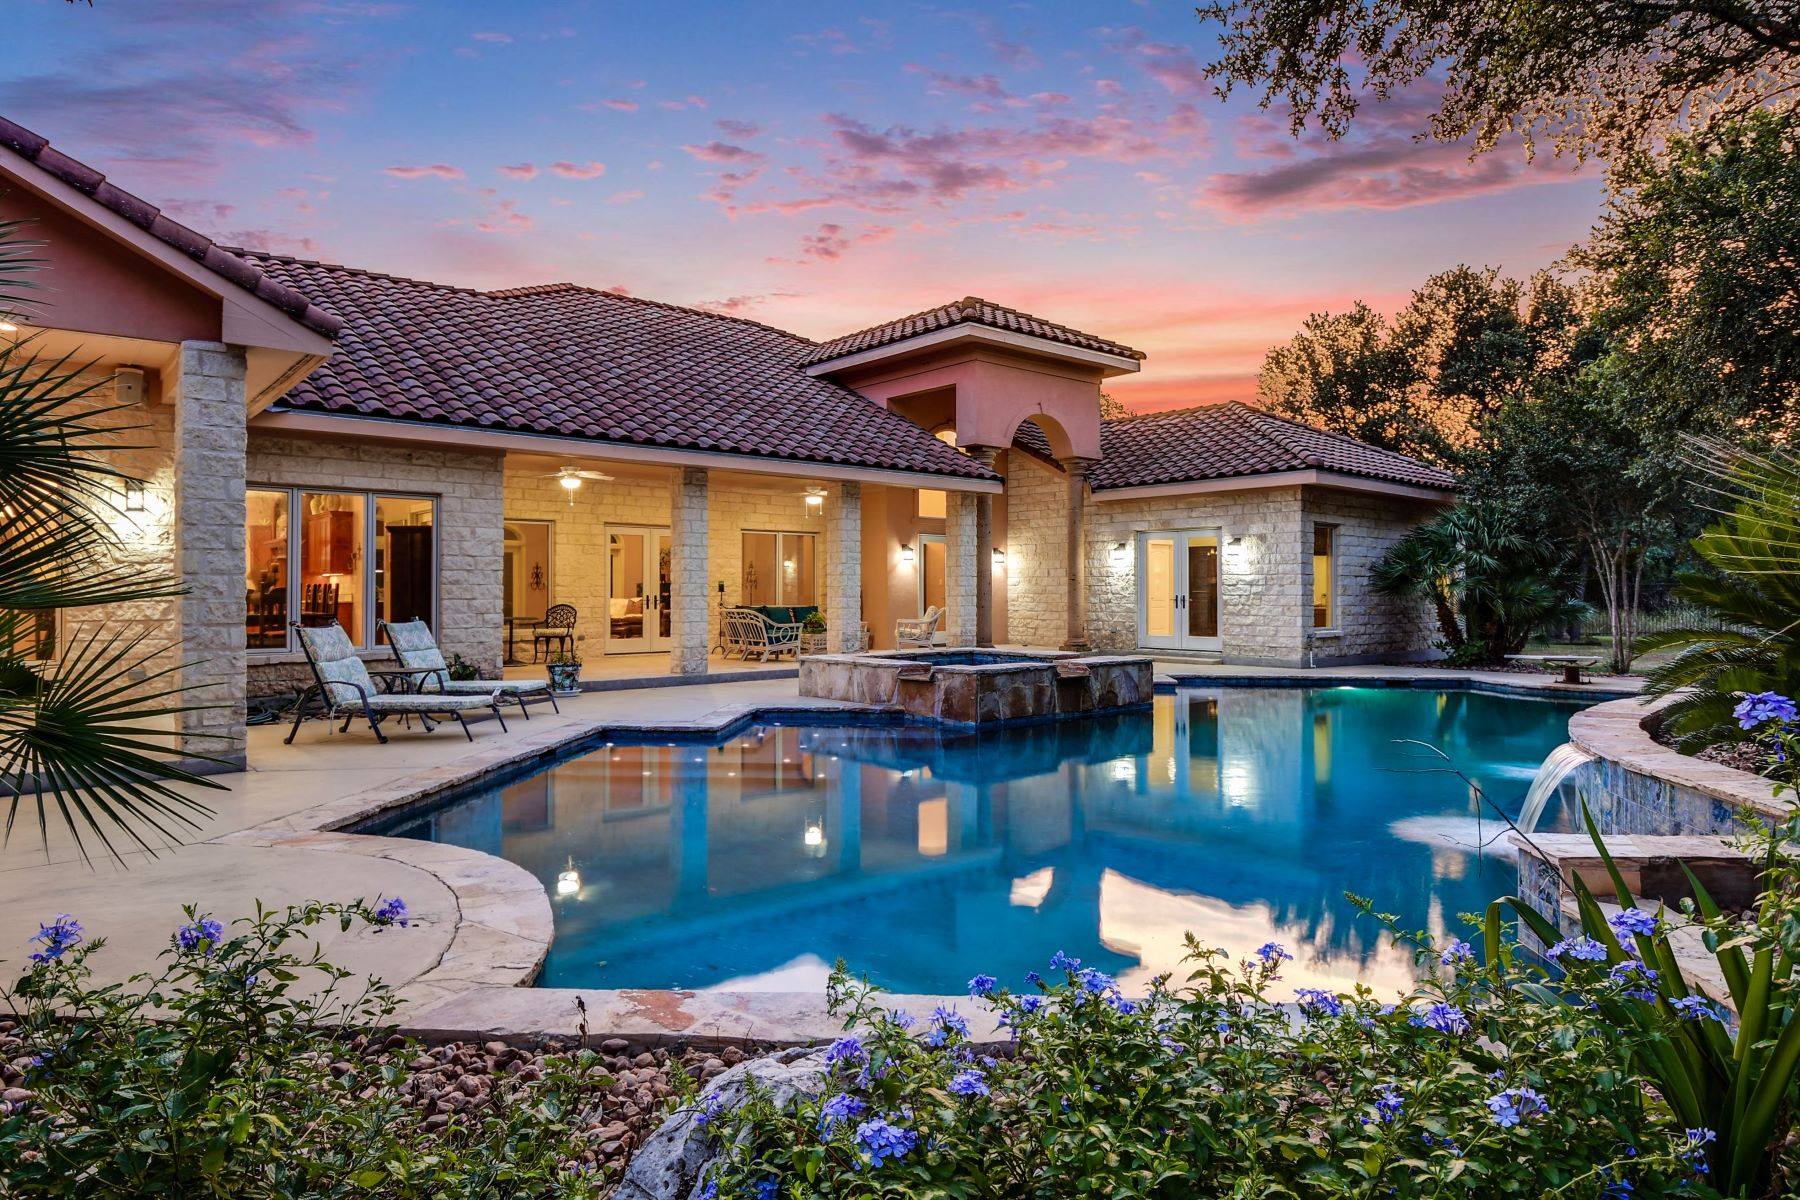 Single Family Homes for Active at Breathtaking Mediterranean Home In Riverforest 173 Oak Canopy Court New Braunfels, Texas 78132 United States